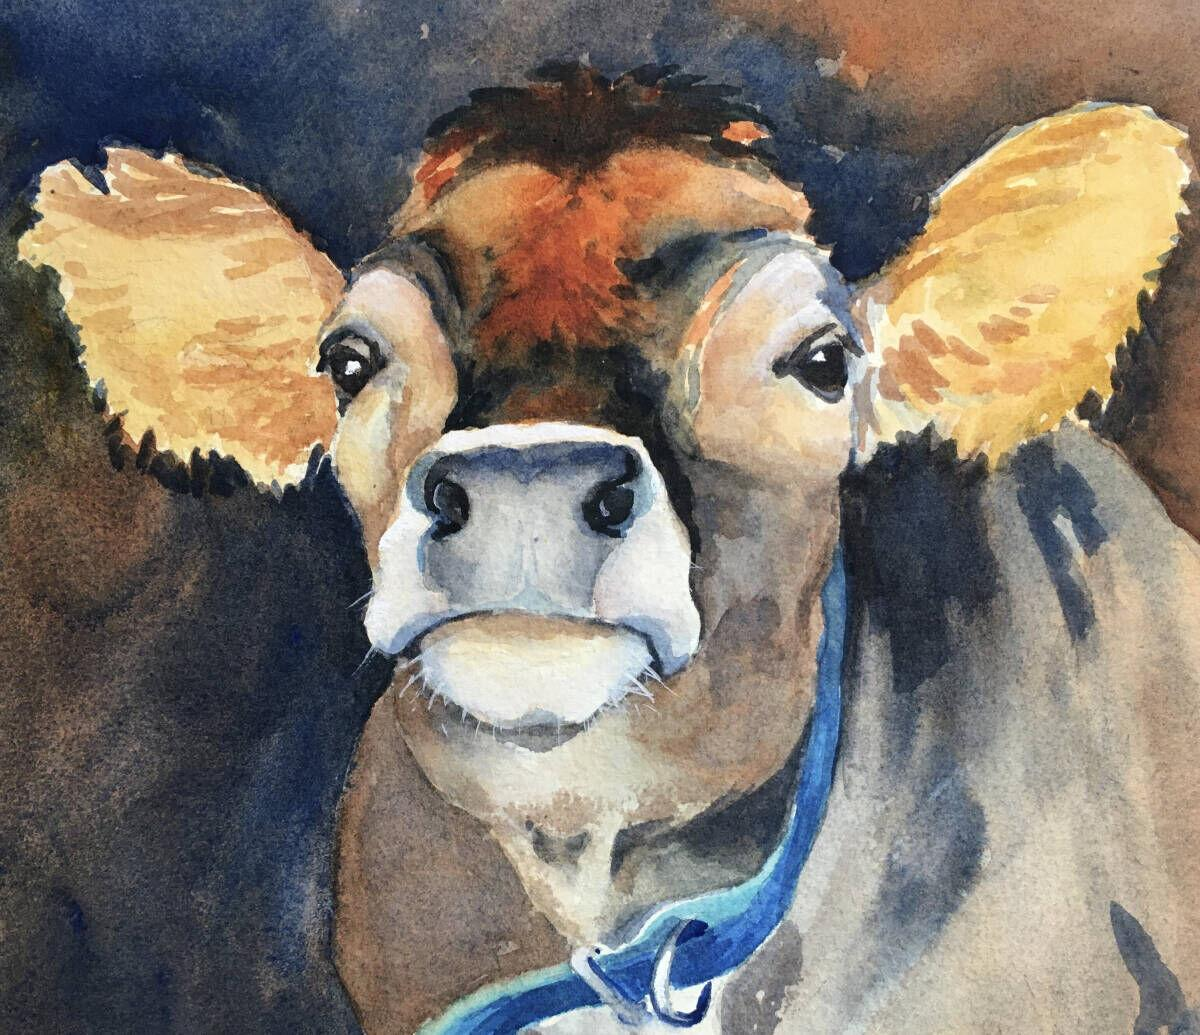 Fall Foliage Pop-up Art Sale At Cabot Art Barn Features Local Artists